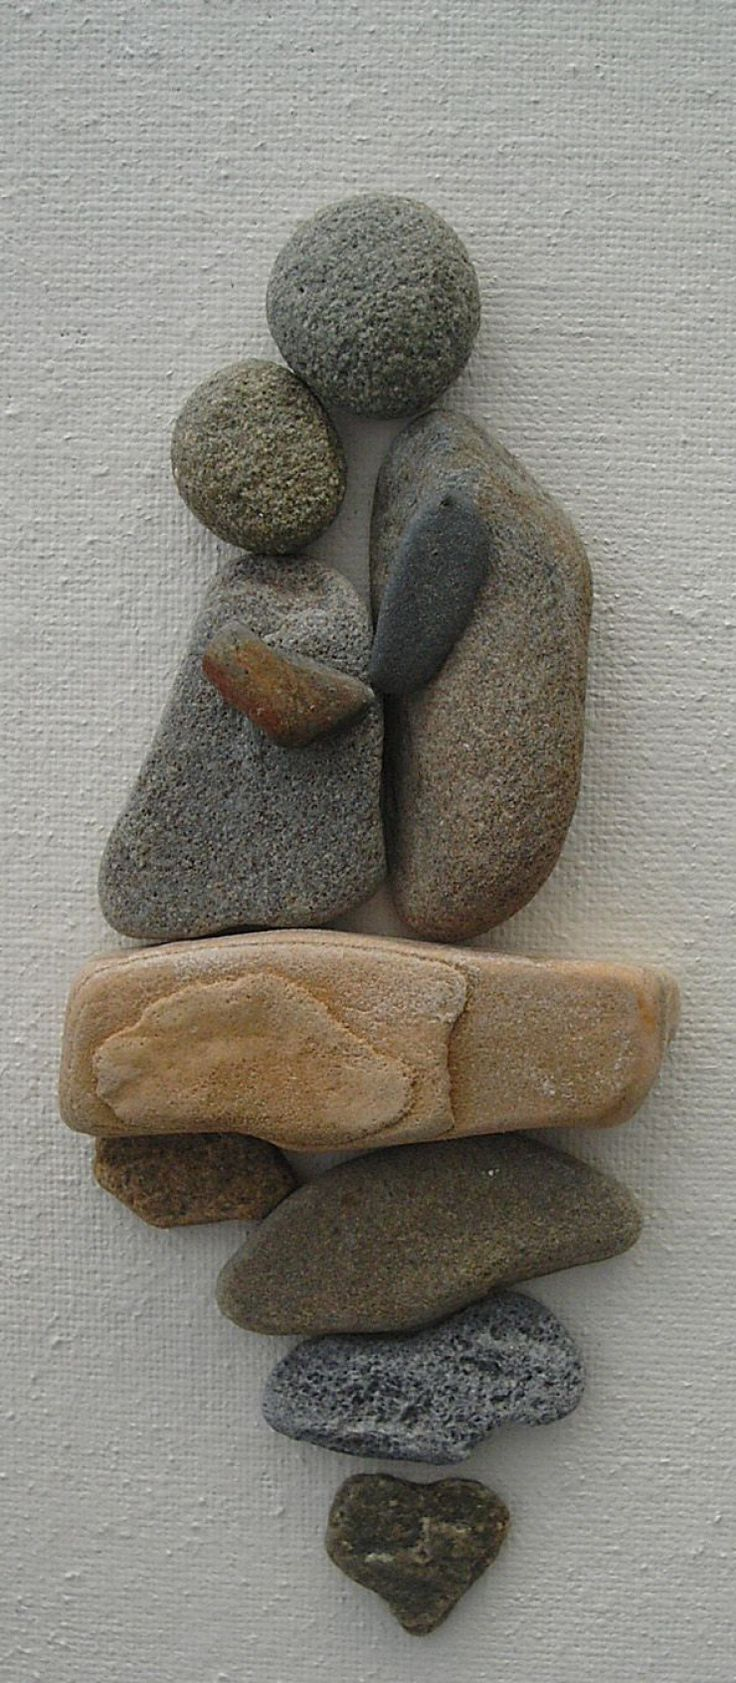 rock crafts ideas best 25 crafts ideas on stones pebble 2845